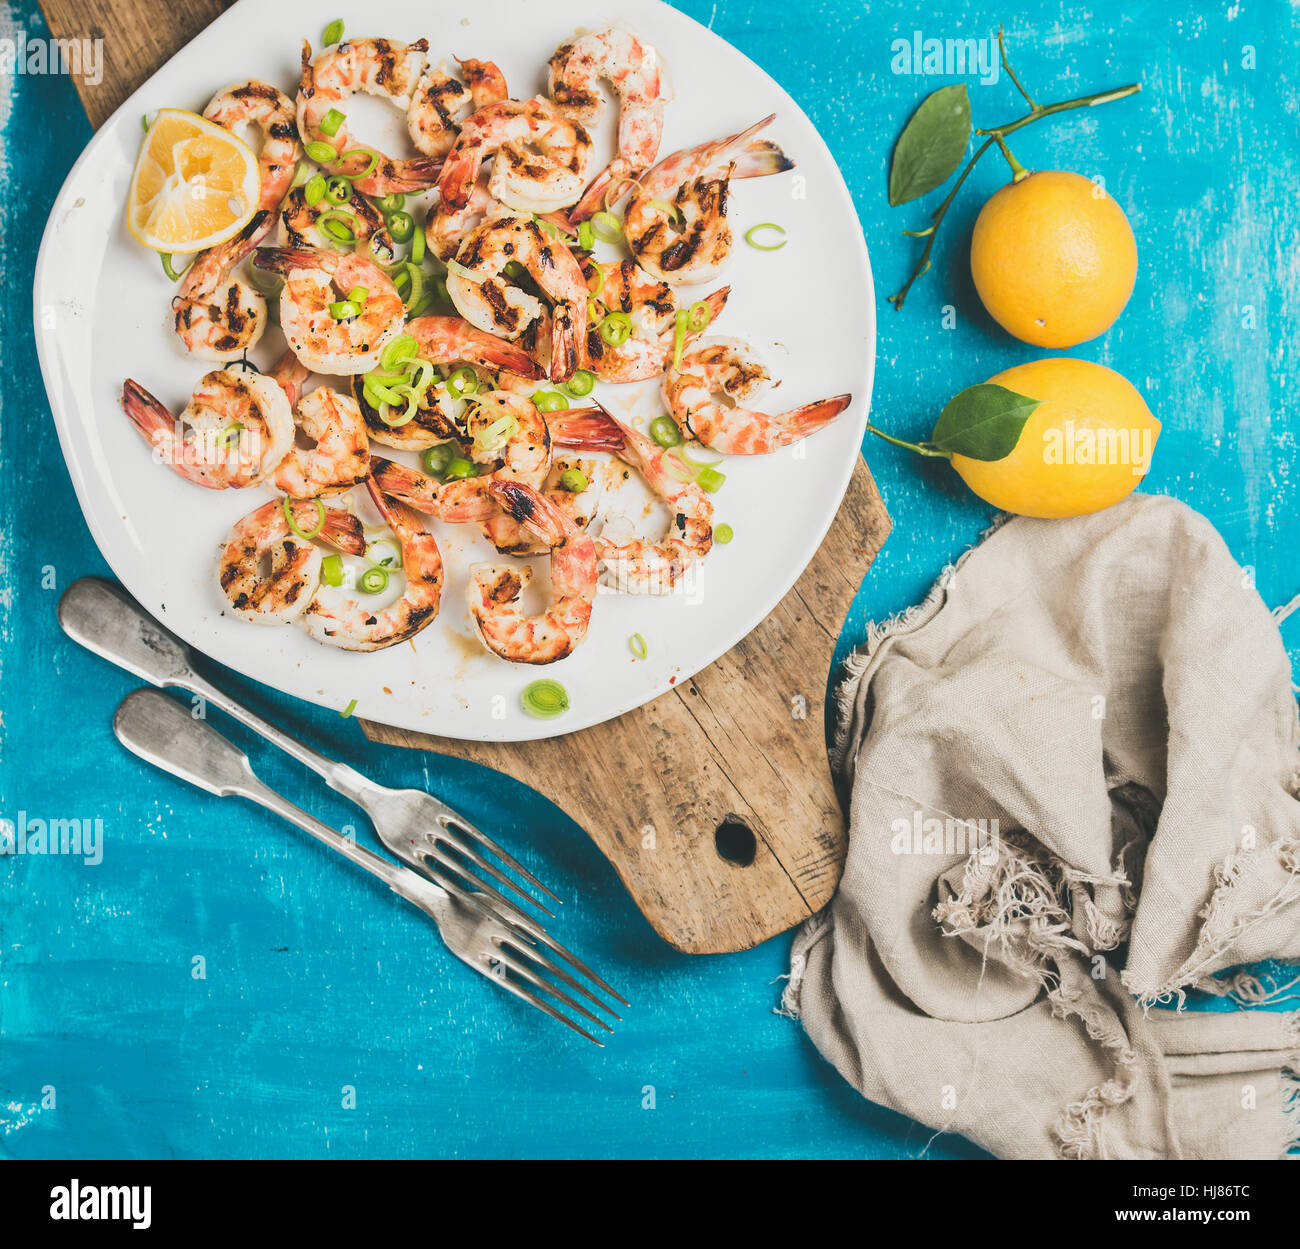 Grilled tiger prawns in white plate with lemon, leek, chili - Stock Image